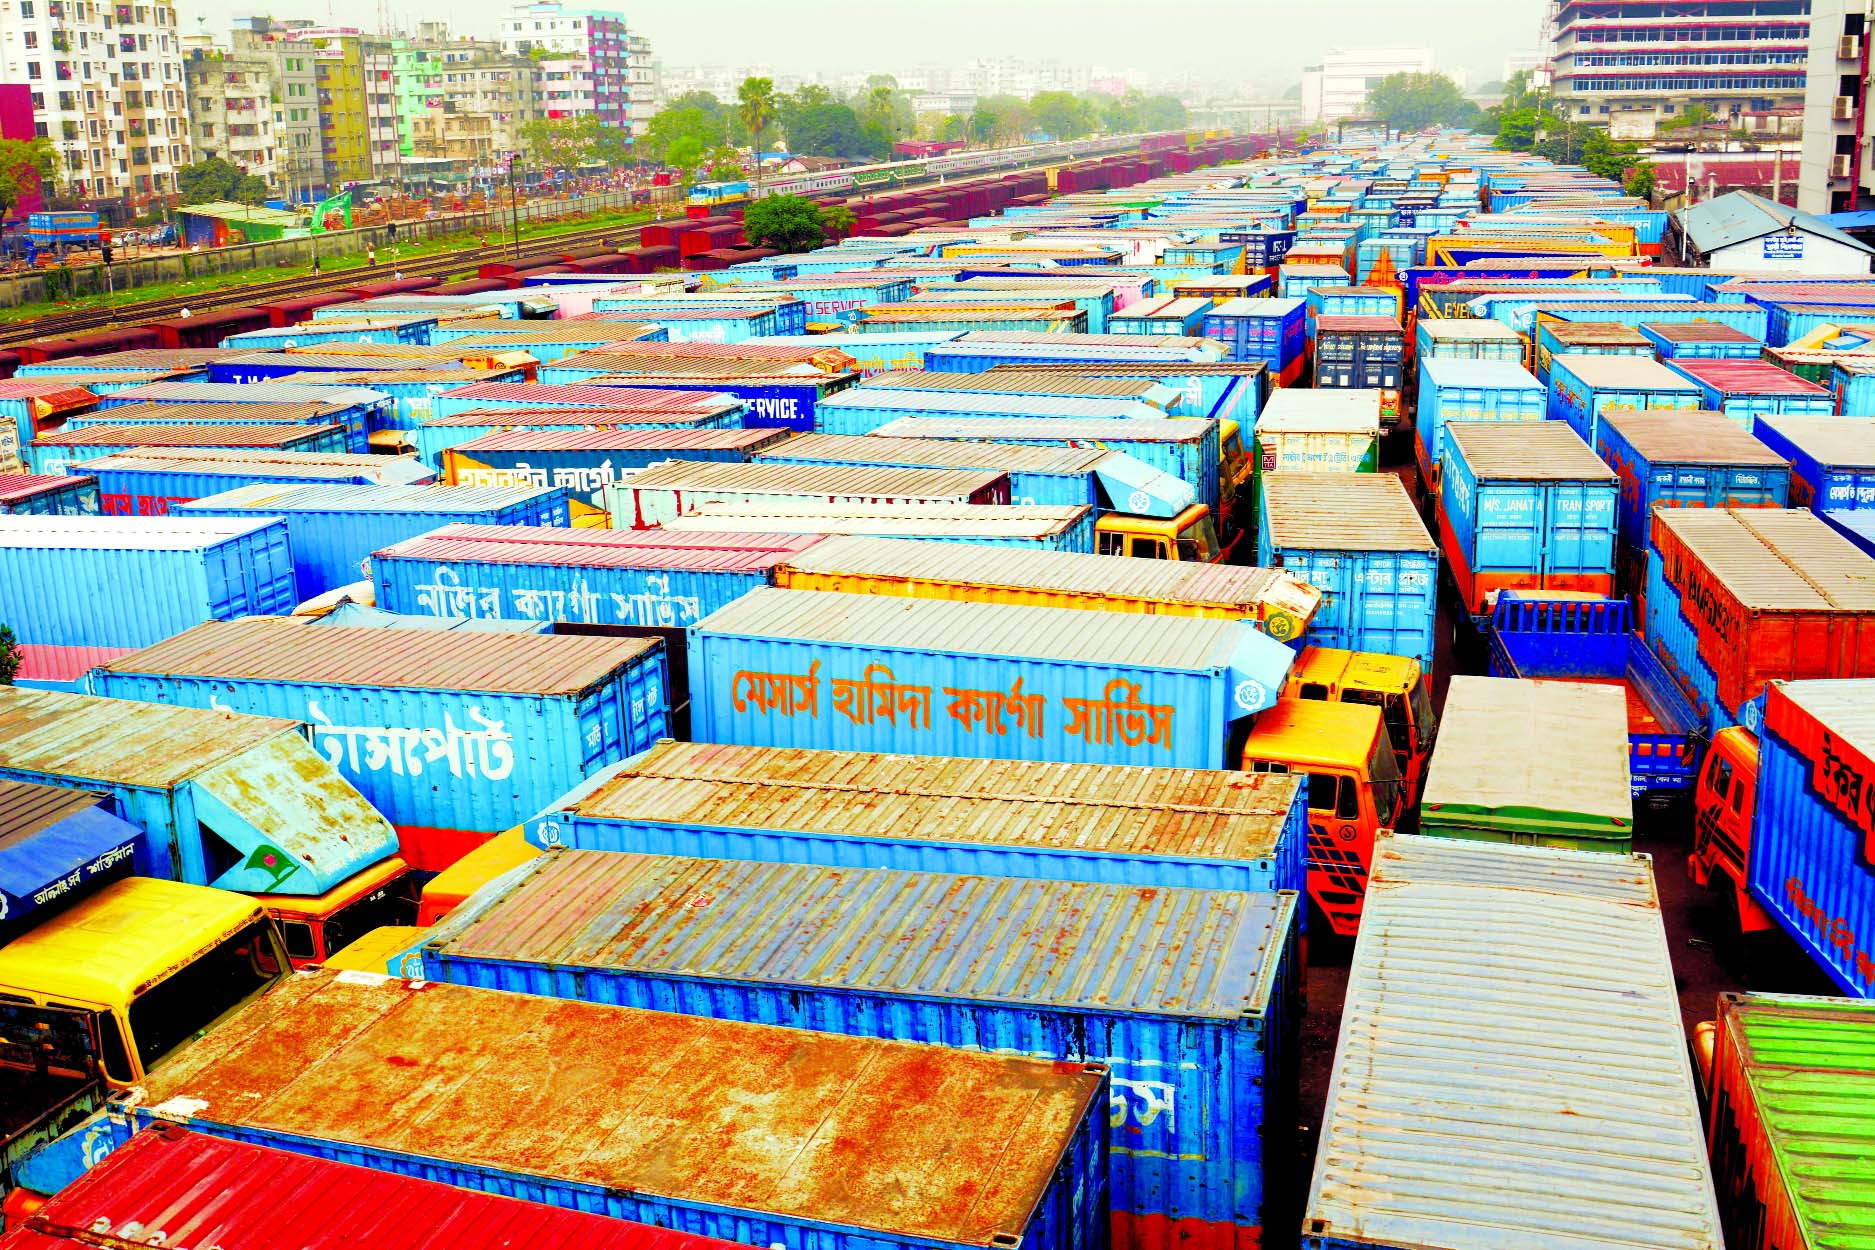 Thousands of trucks, covered vans remain parked and halted for an indefinite period from today (Wednesday), demanding reformation of new Road Transport Act (RTA) organised by Truck, Covered Van Owner-Worker Oikya Parishad. This photo was taken from Tejgaon area on Tuesday.